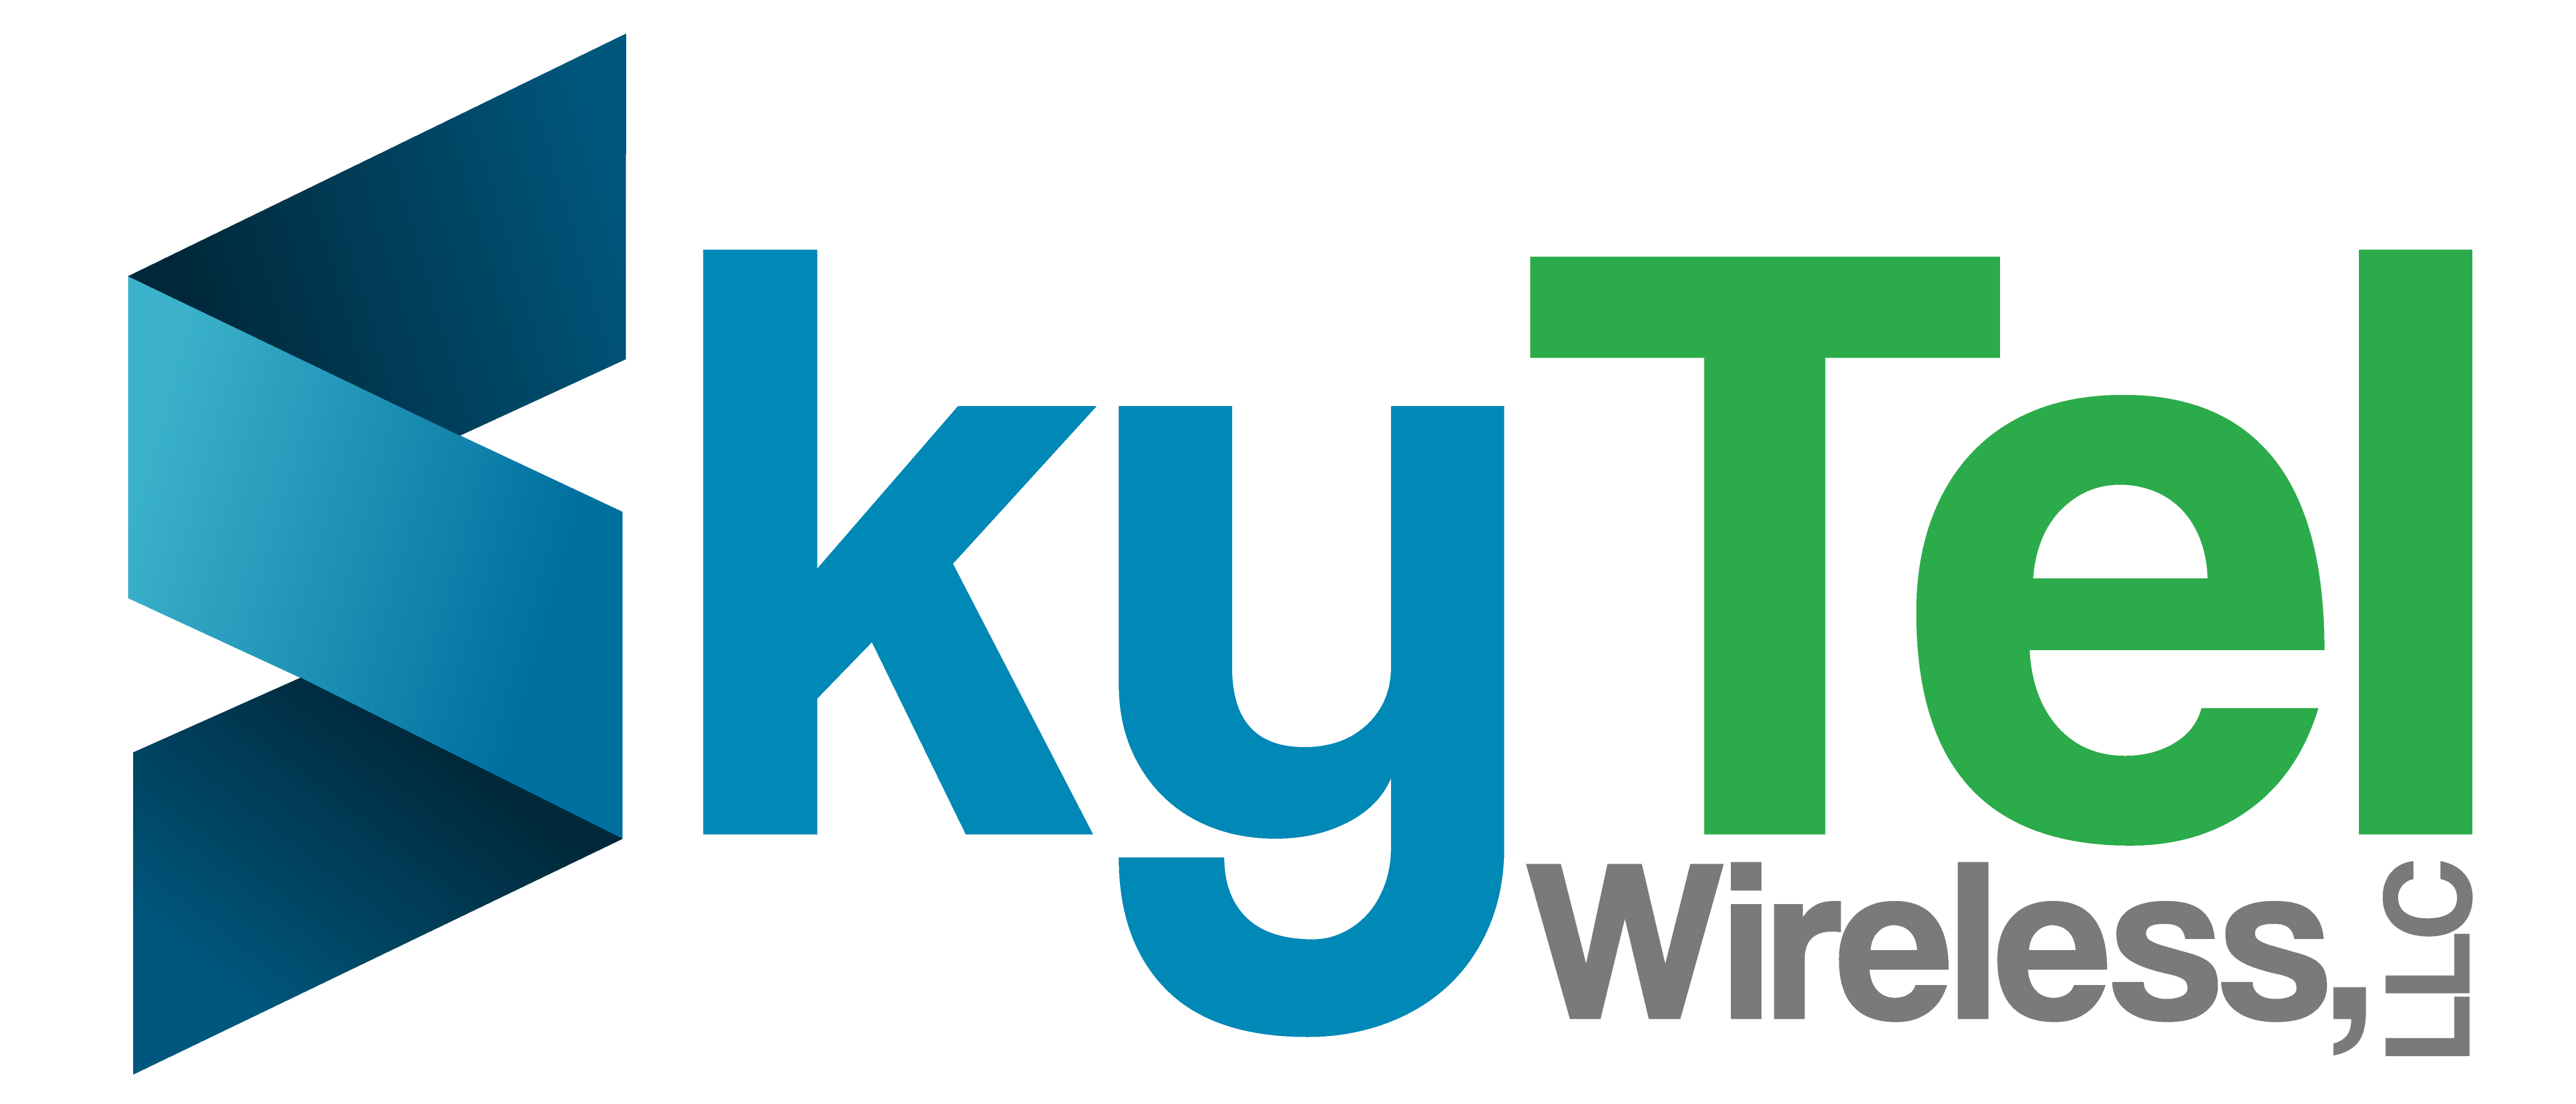 SkyTel Wireless Services